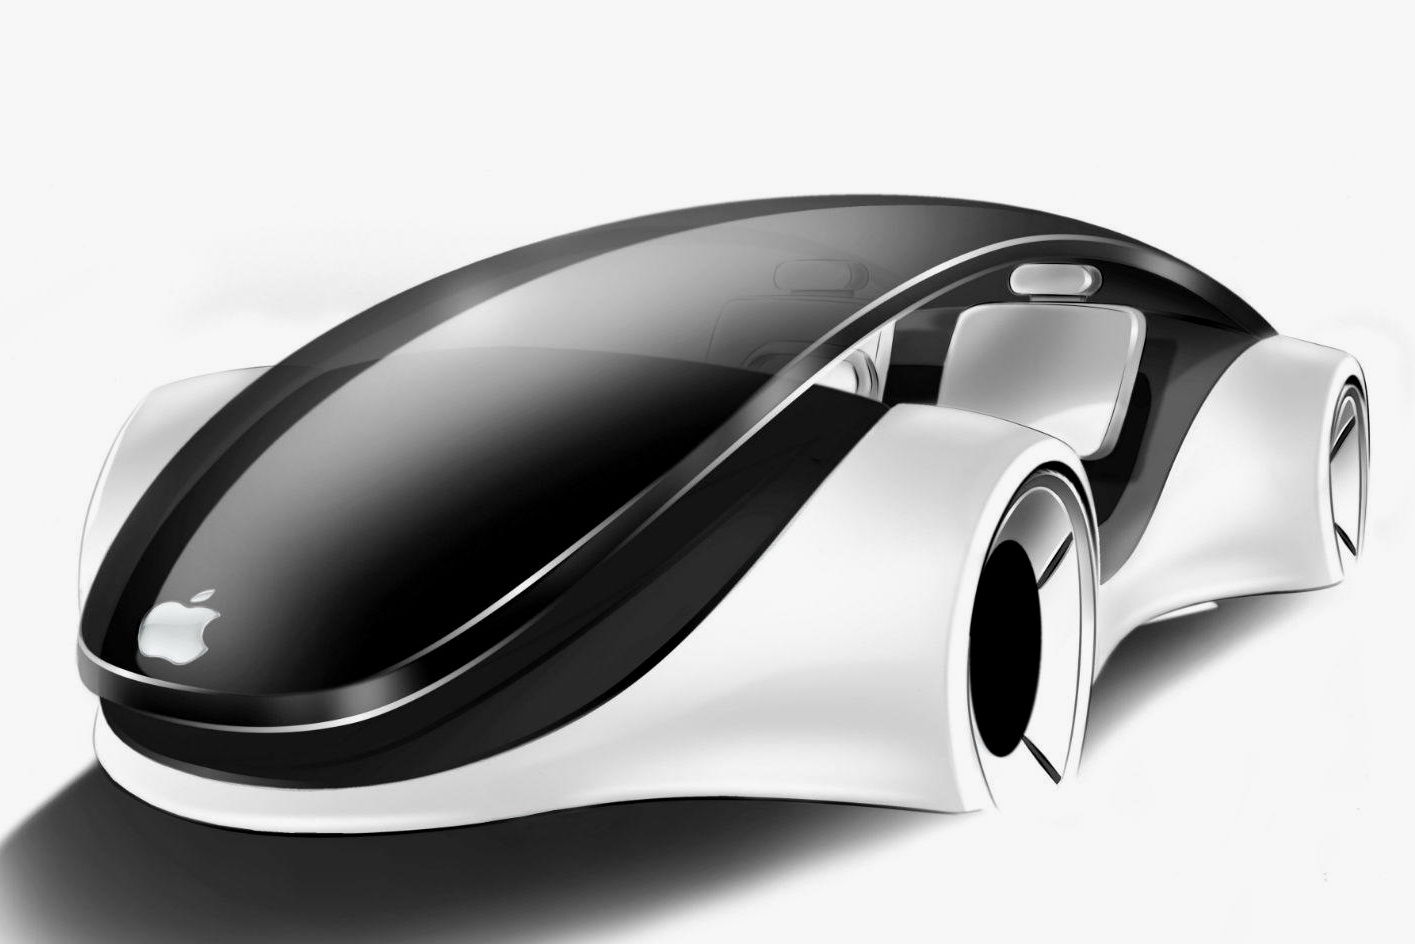 apple-letter-self-driving-car-101